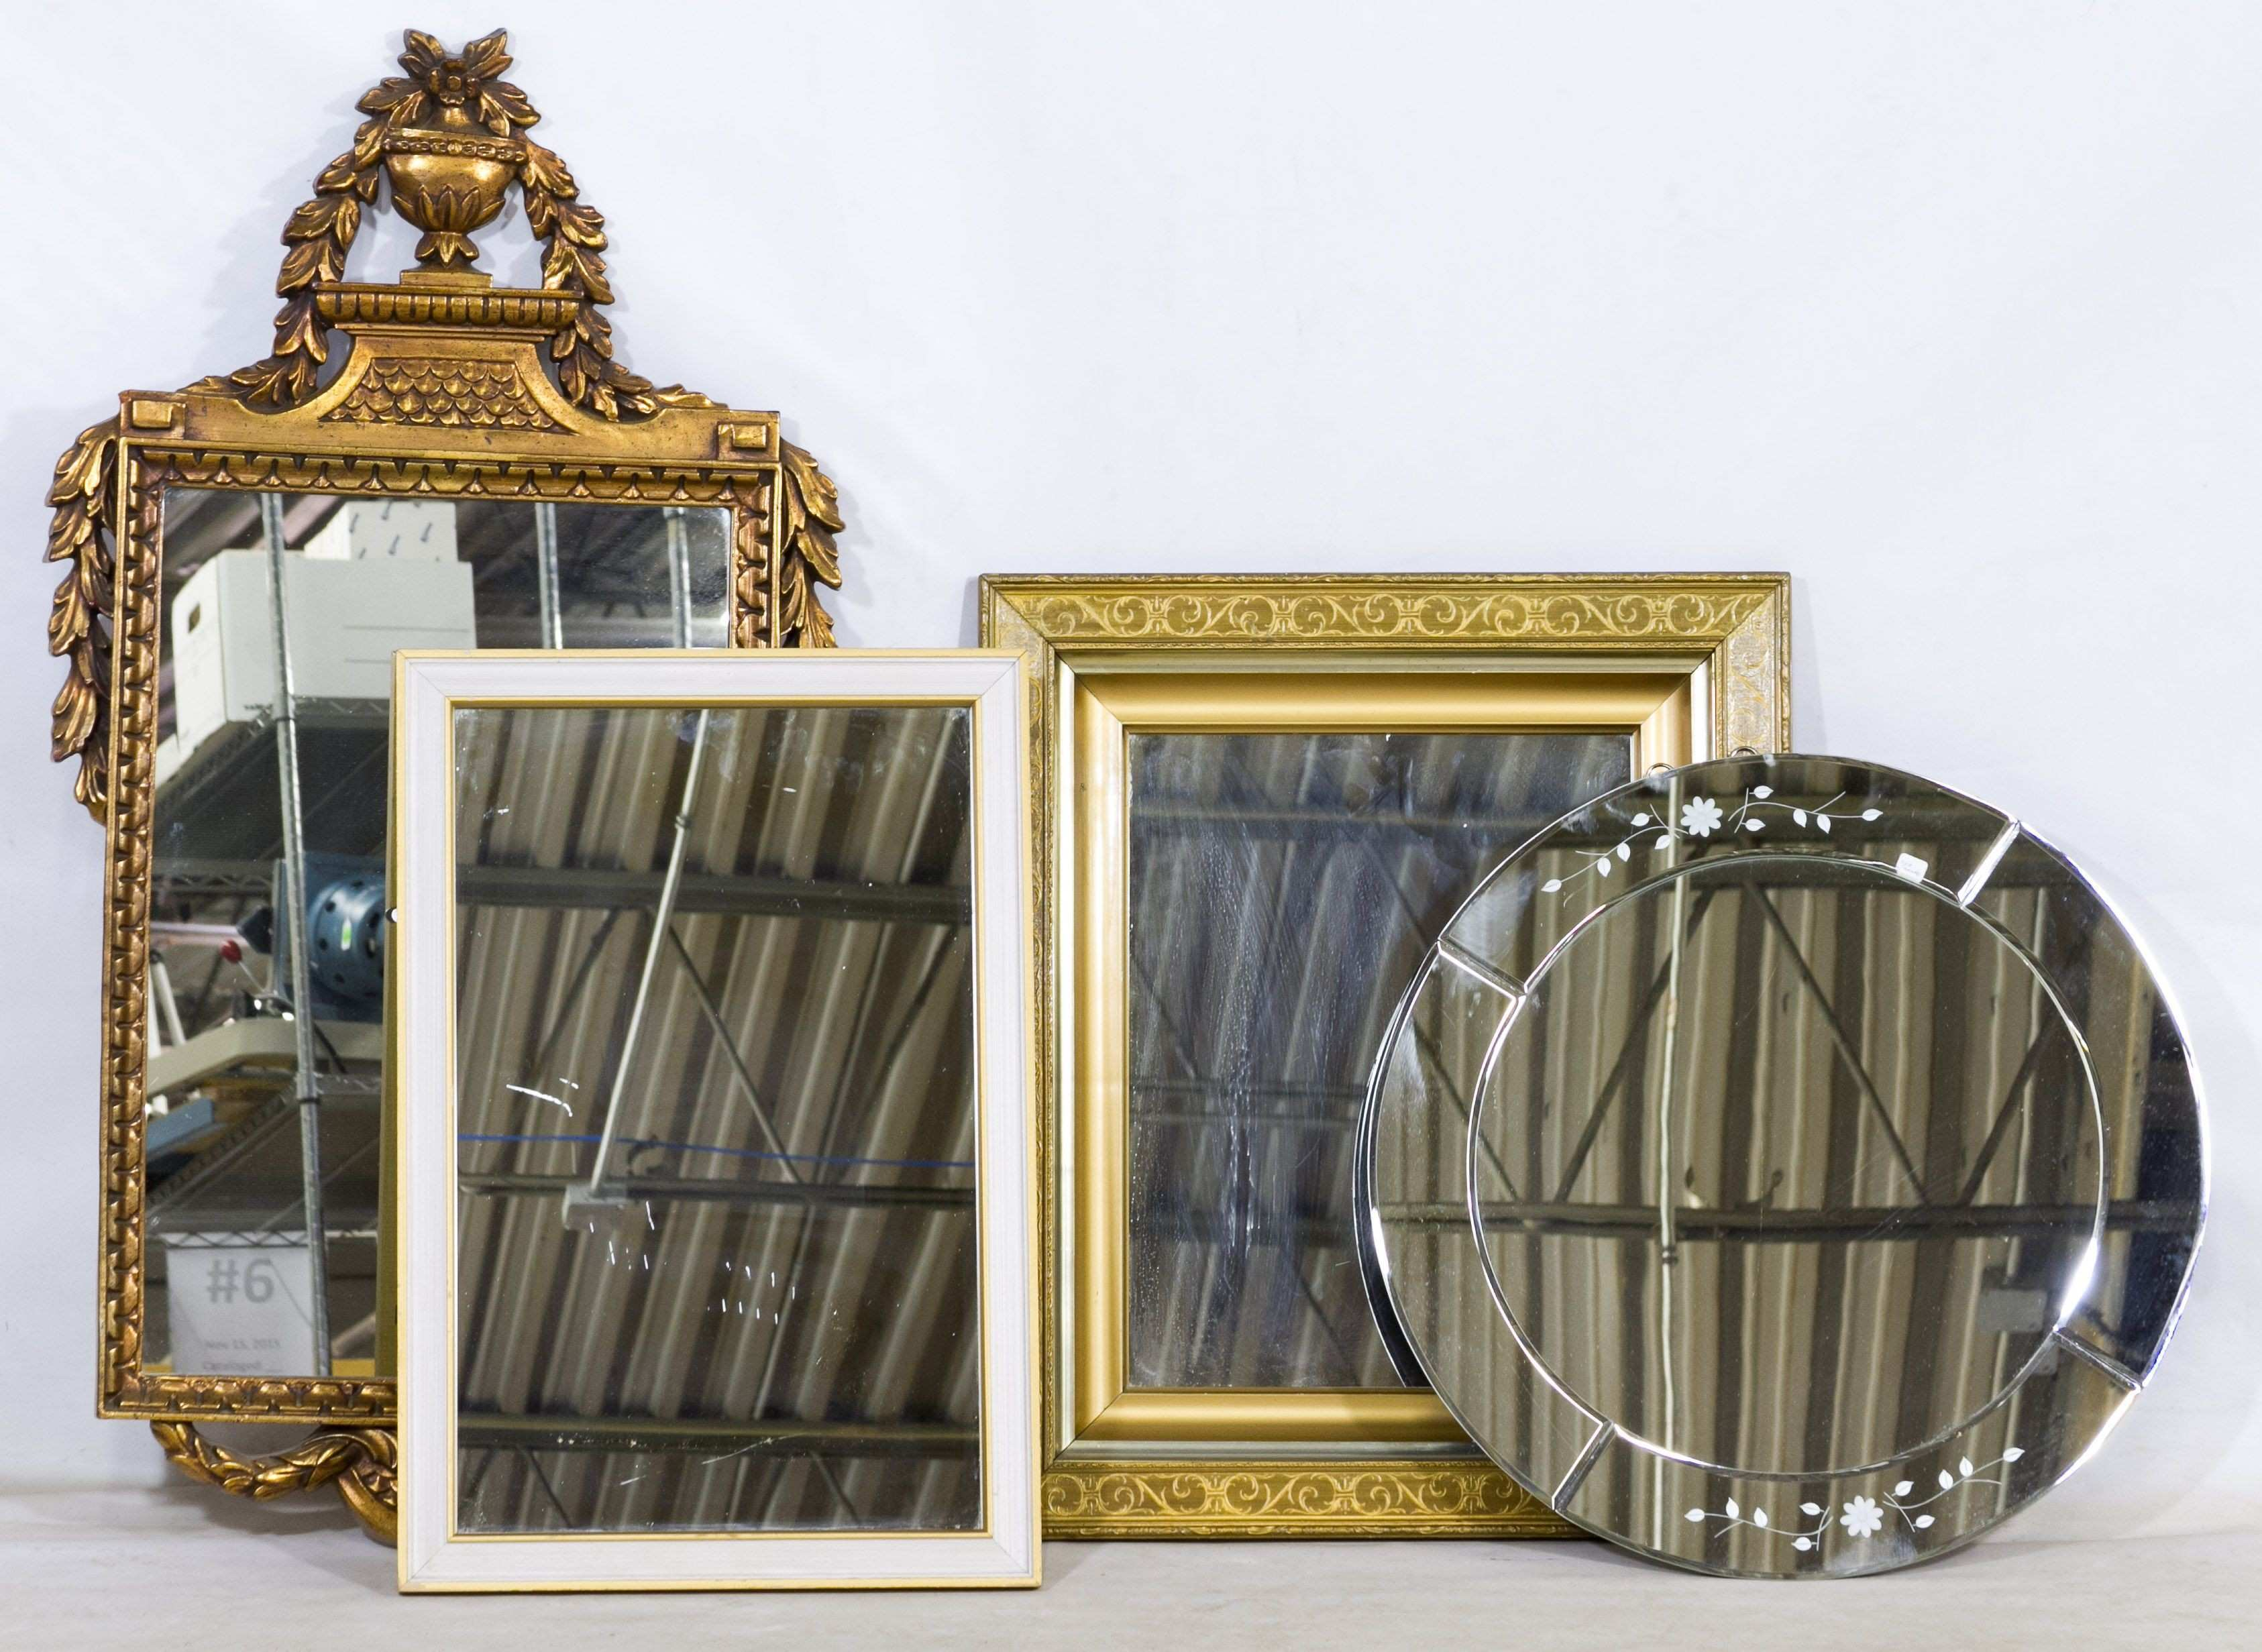 Lot 681 Wall Mirror Assortment Four items including two